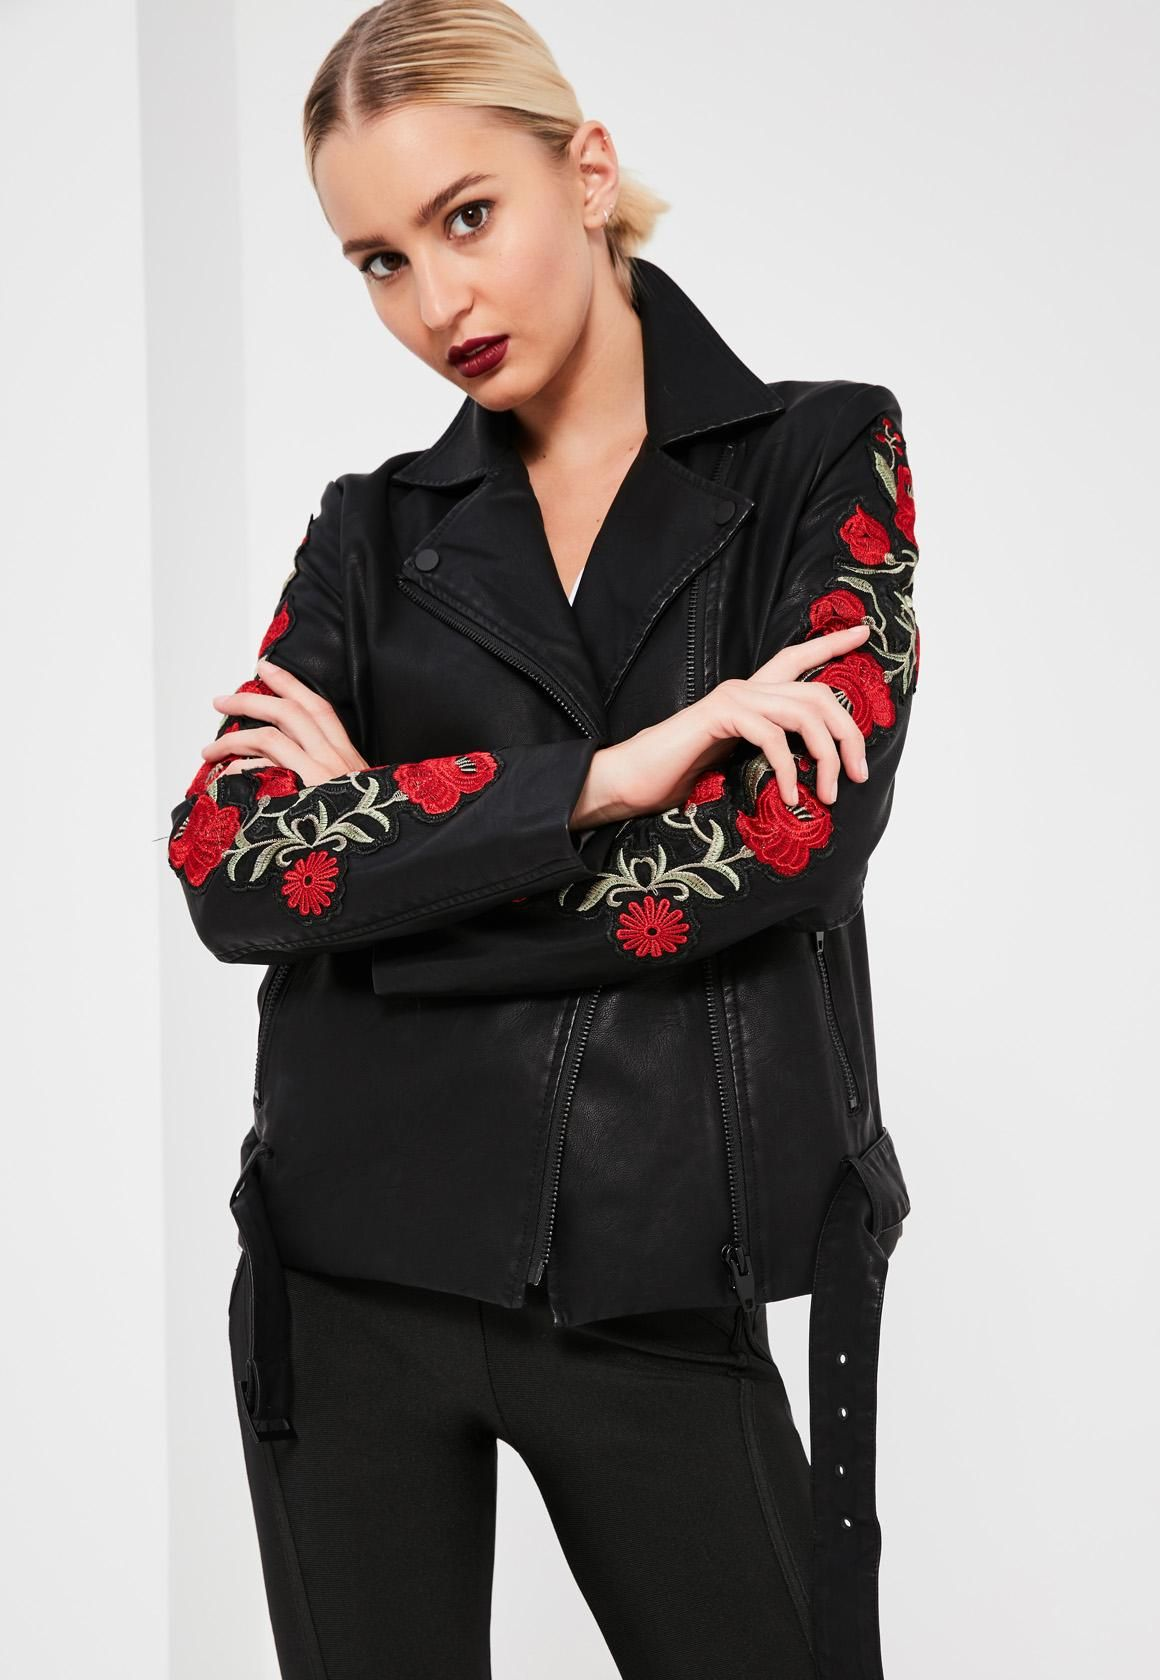 Missguided - Black Floral Embroidered Faux Leather Jacket